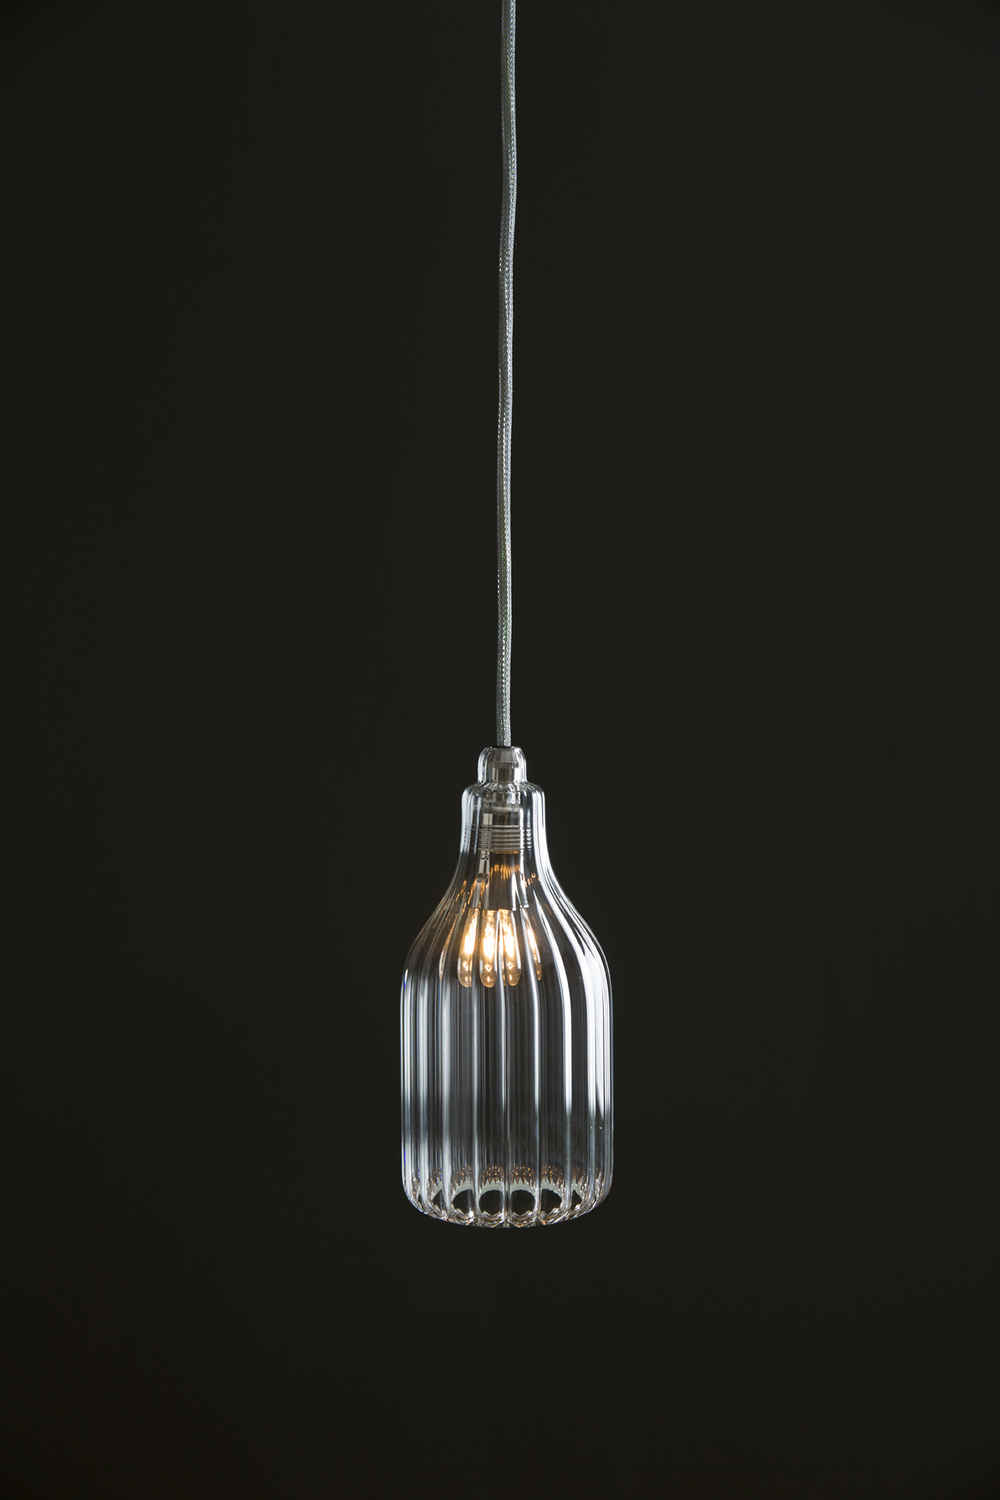 POTUM LUX PENDANT: Vertical Description:  Hand blown vertical glass pendant in conturax glass. Materials:  Conturax borrow ciliate glass, chrome E14 lamp holder, chrome ceiling rose, silver flex cable.  Dimensions: In either  47mm x 140mm, 52mm x 140mm or 60mm x 140mm